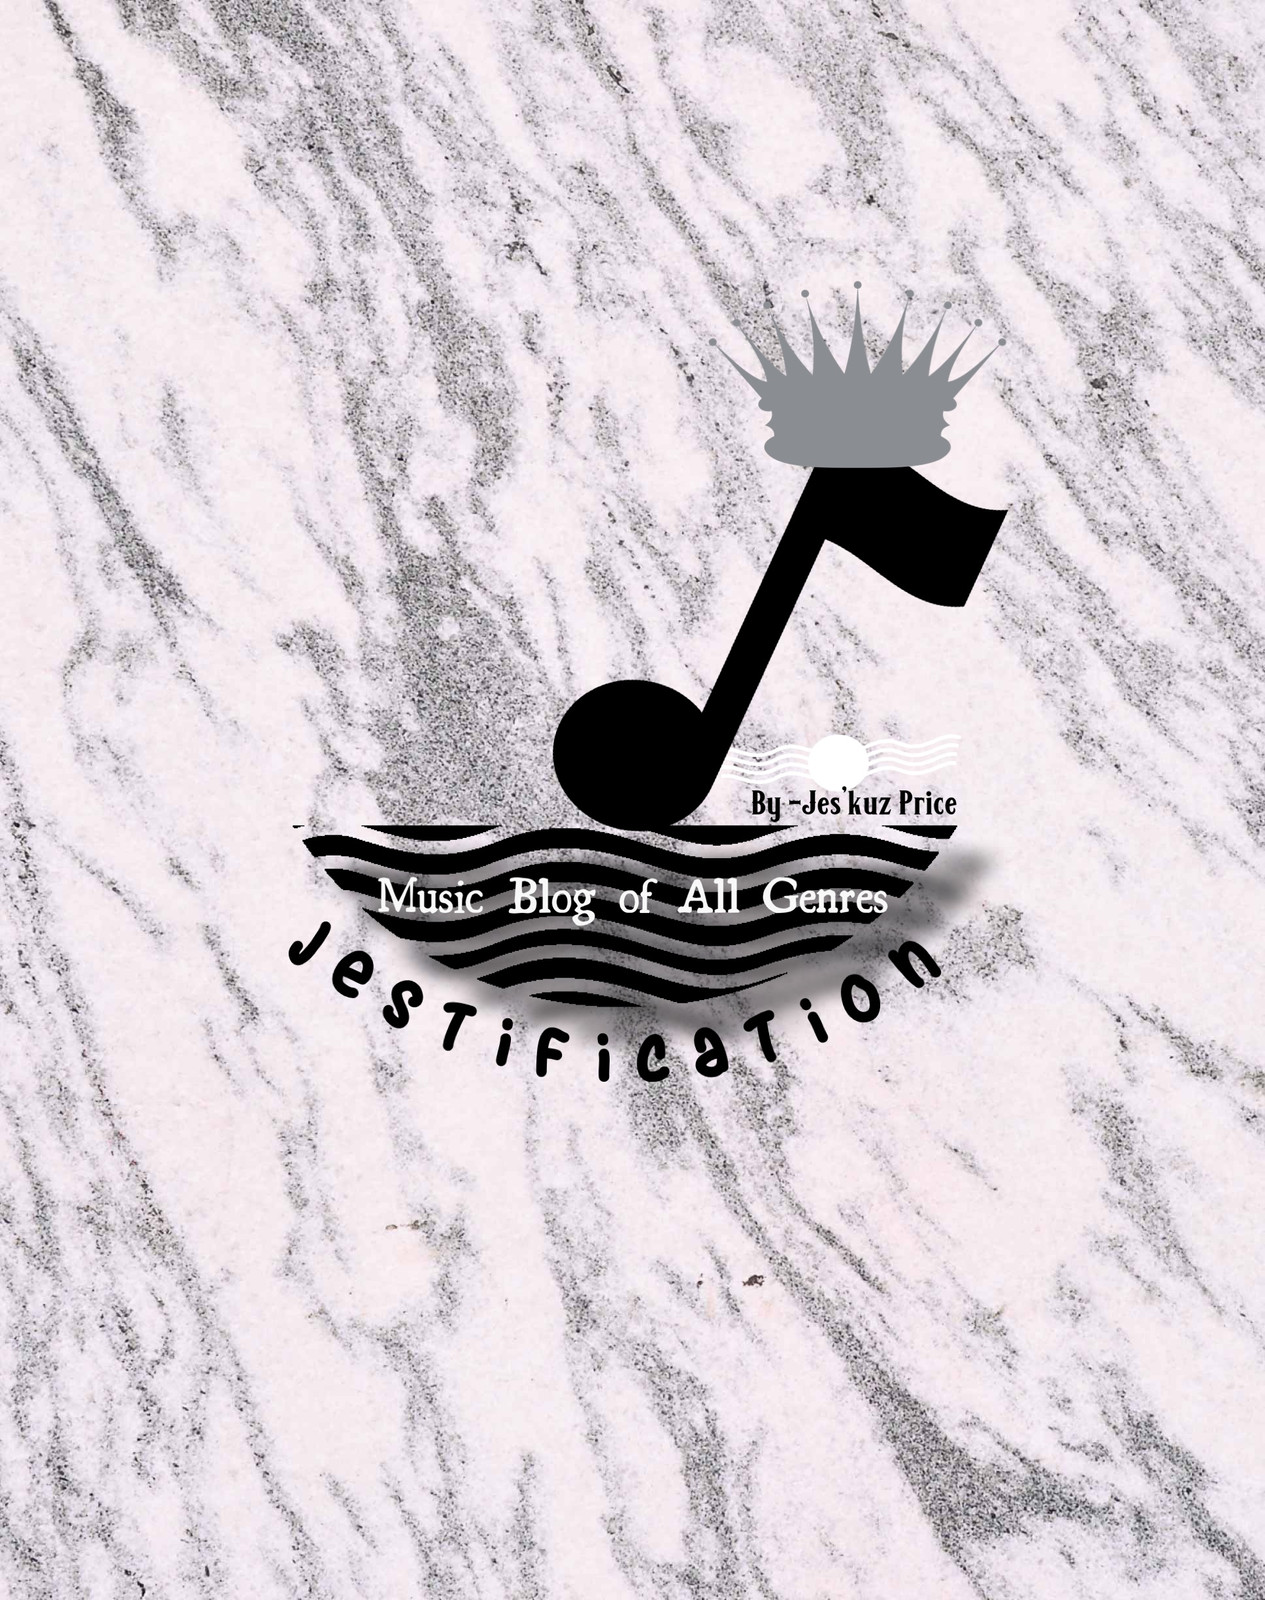 Logo Design for My Music Website: Jestification-All Genres